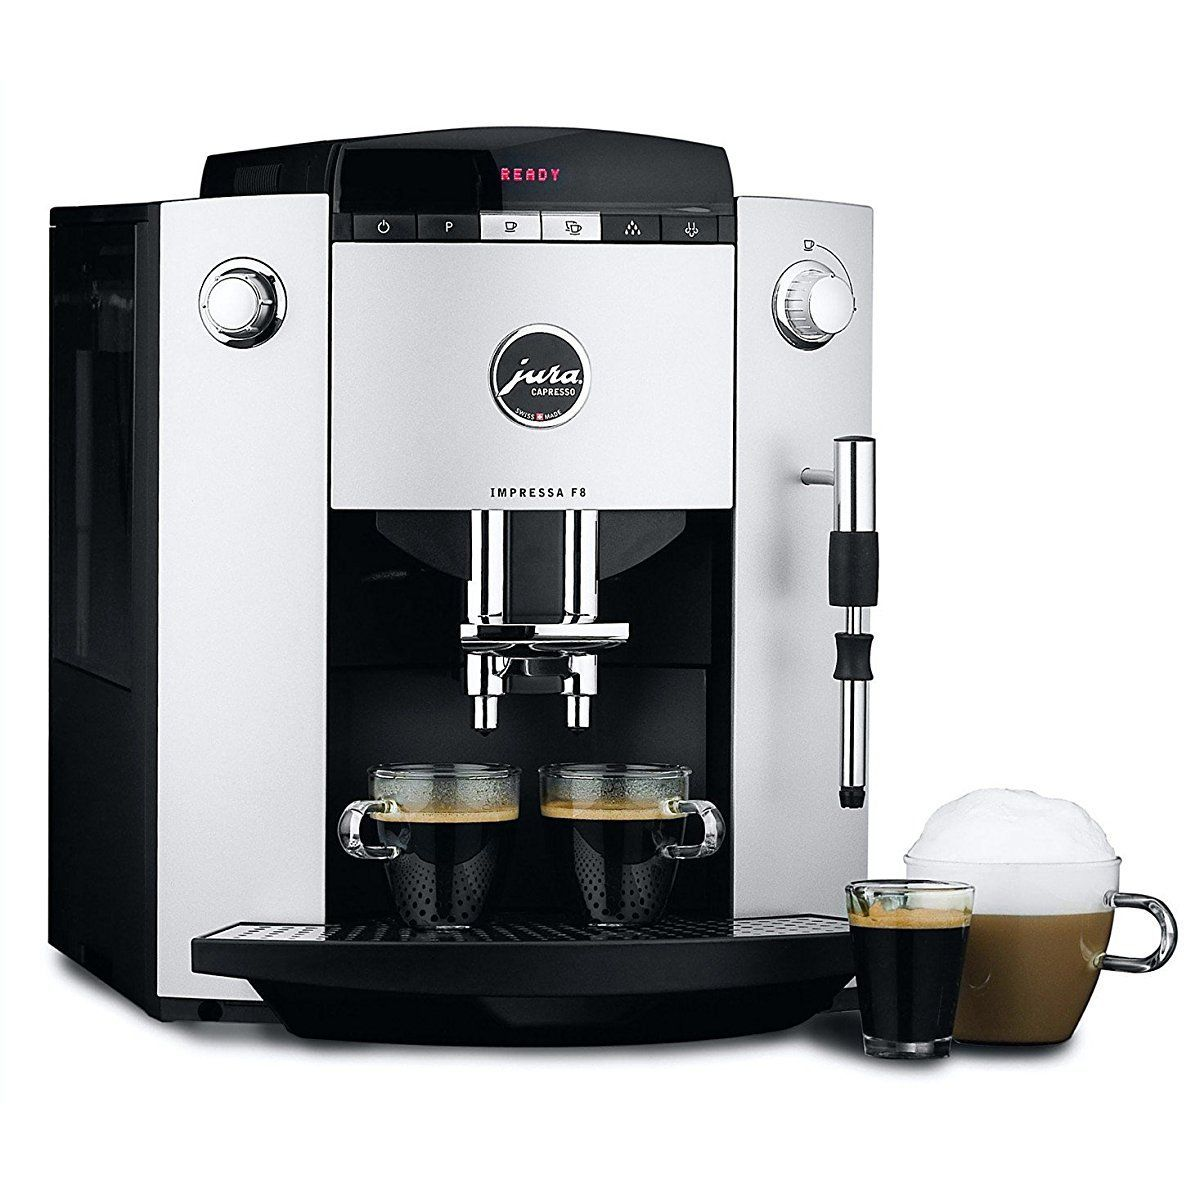 JuraCapresso 13413 Impressa F8 Automatic Coffee and